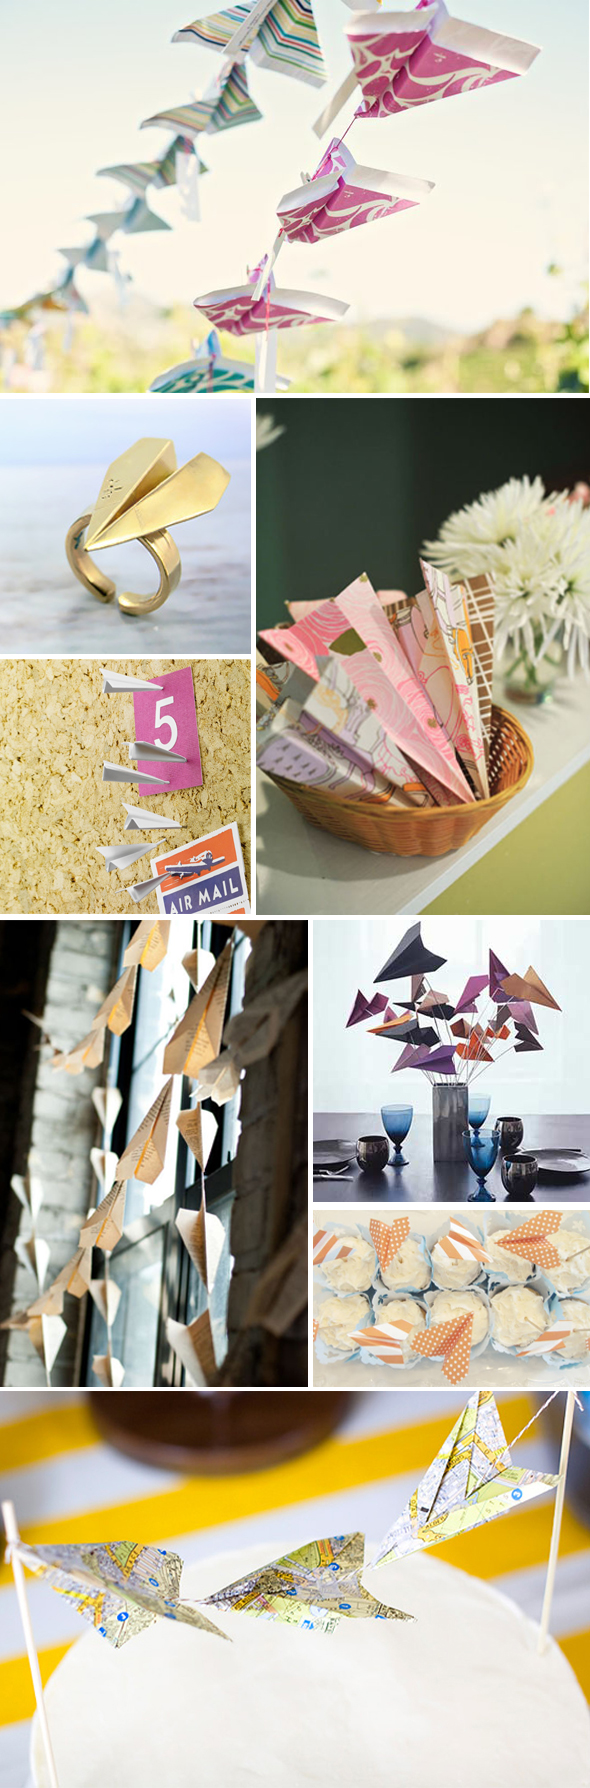 paper-airplane-wedding-ideas